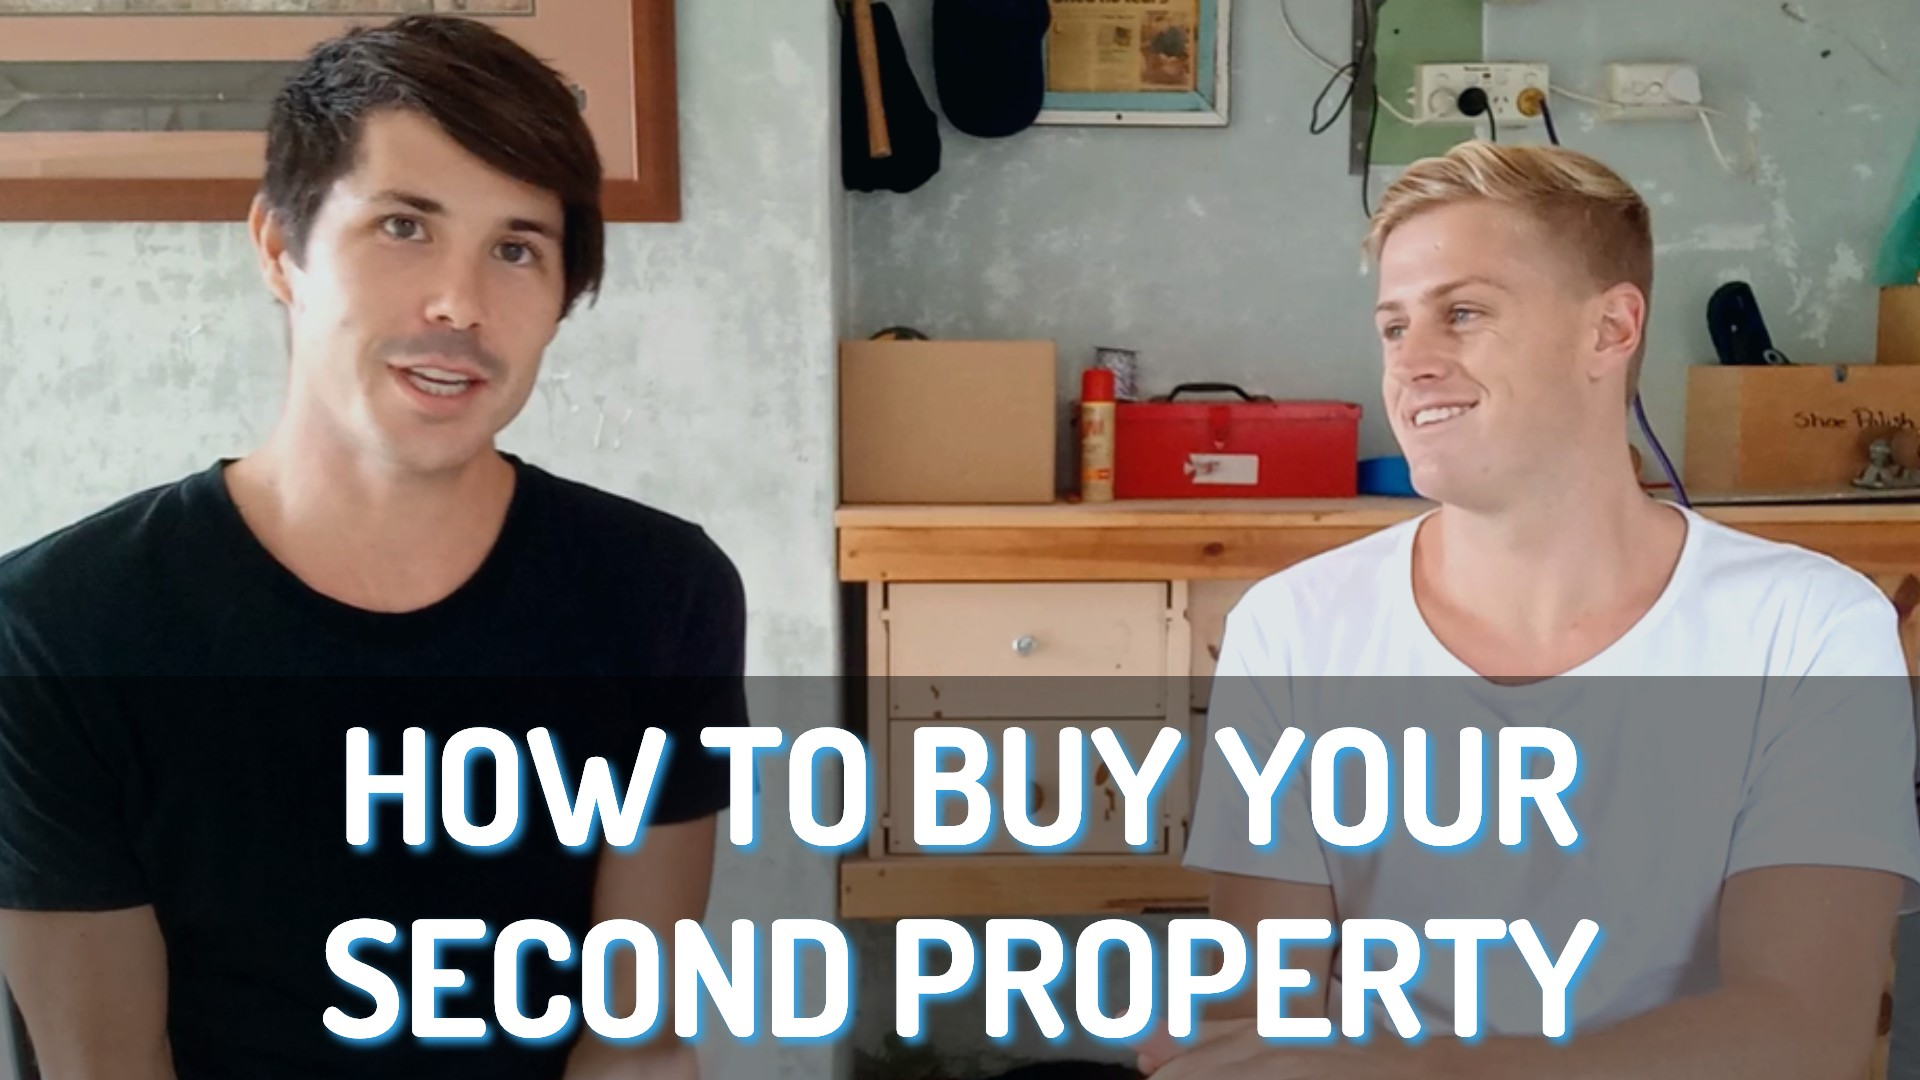 How To Buy Your Second Property